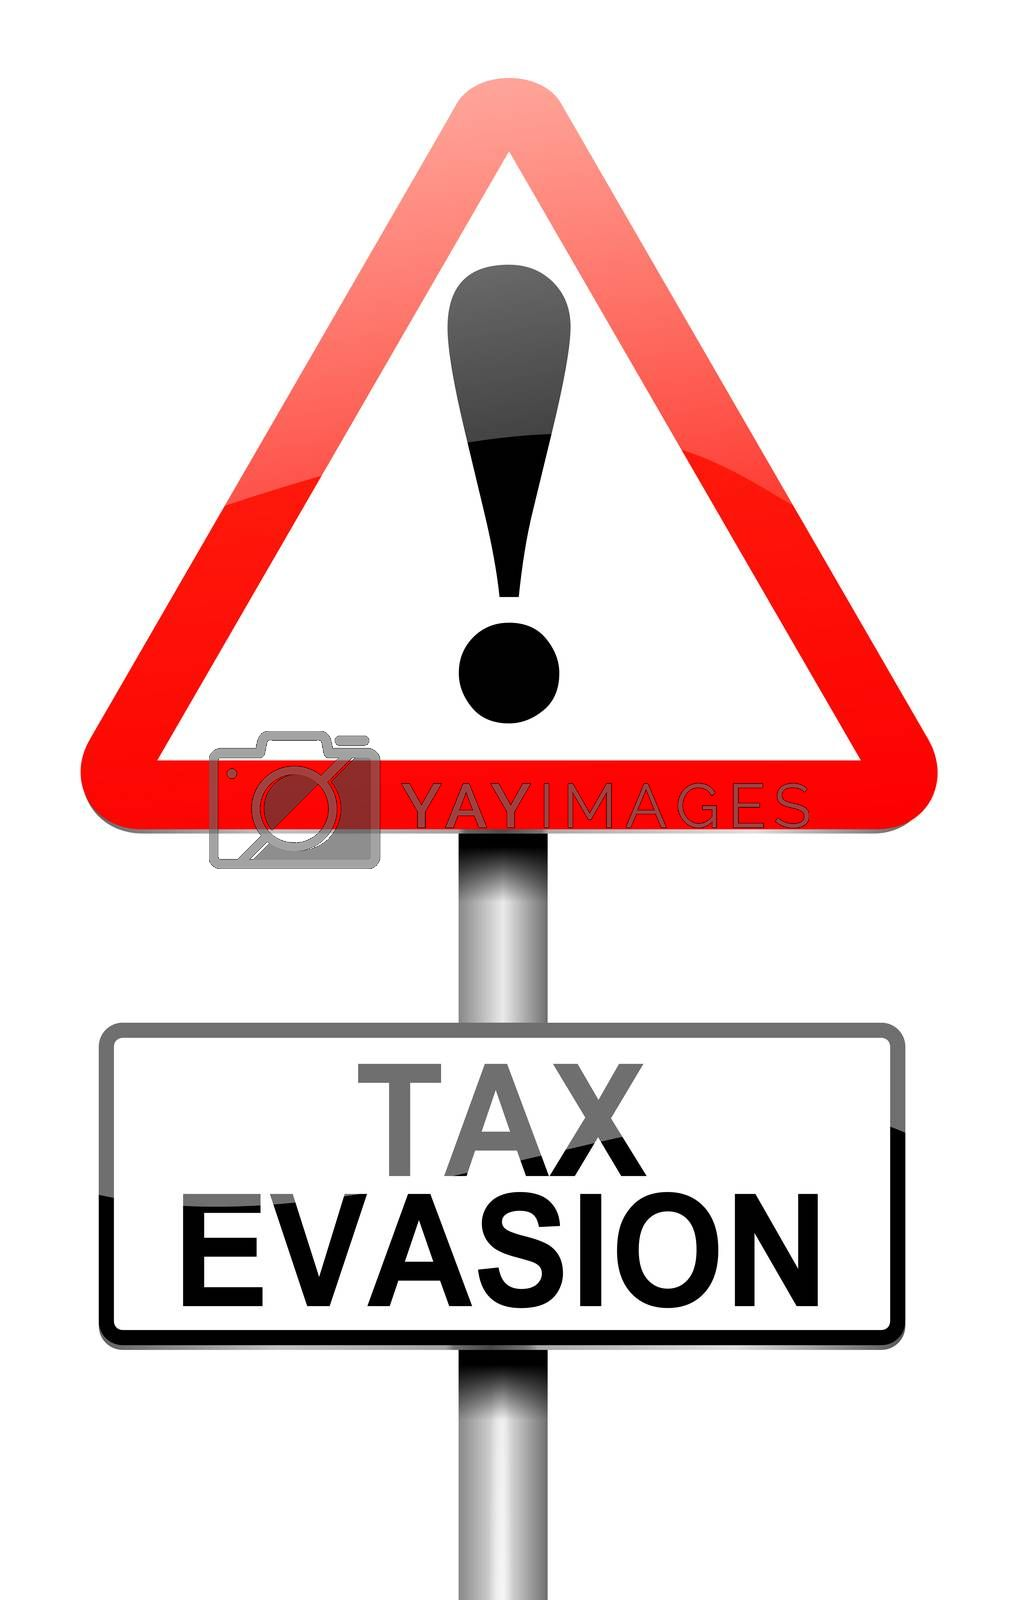 Tax evasion sign. by 72soul